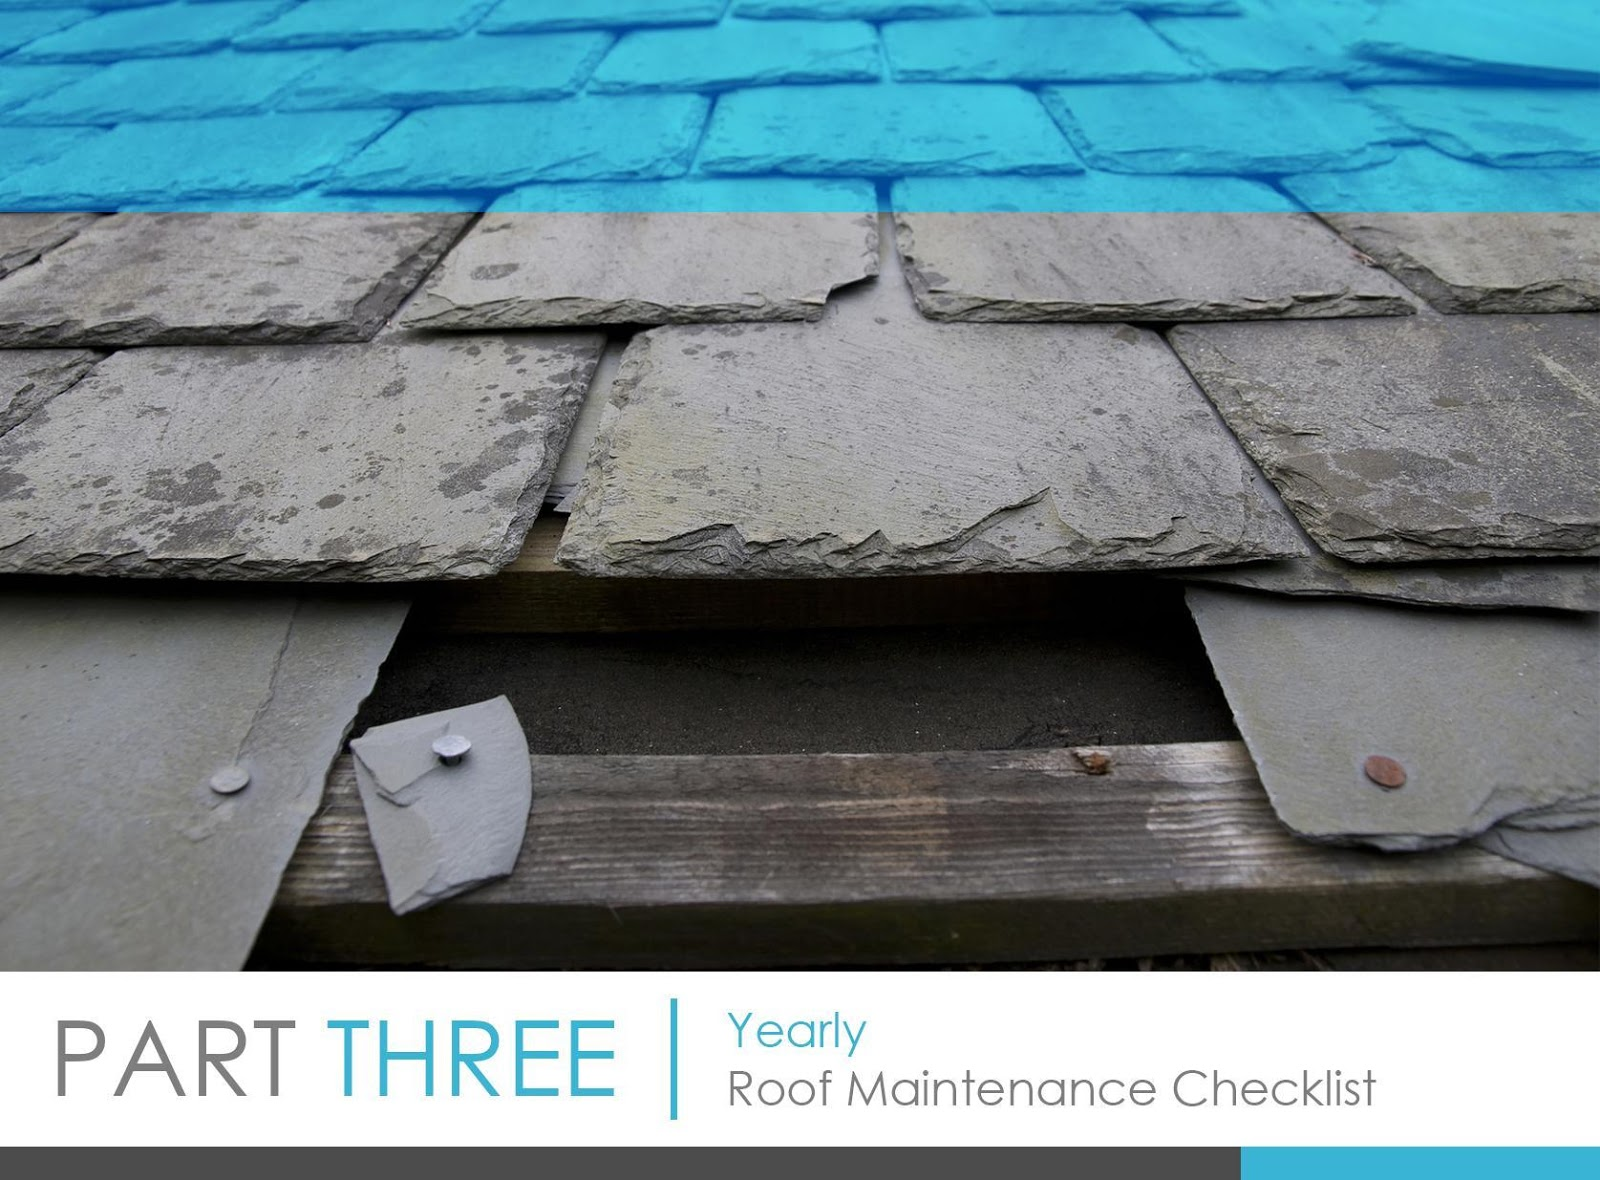 Yearly Roof Maintenance Checklist